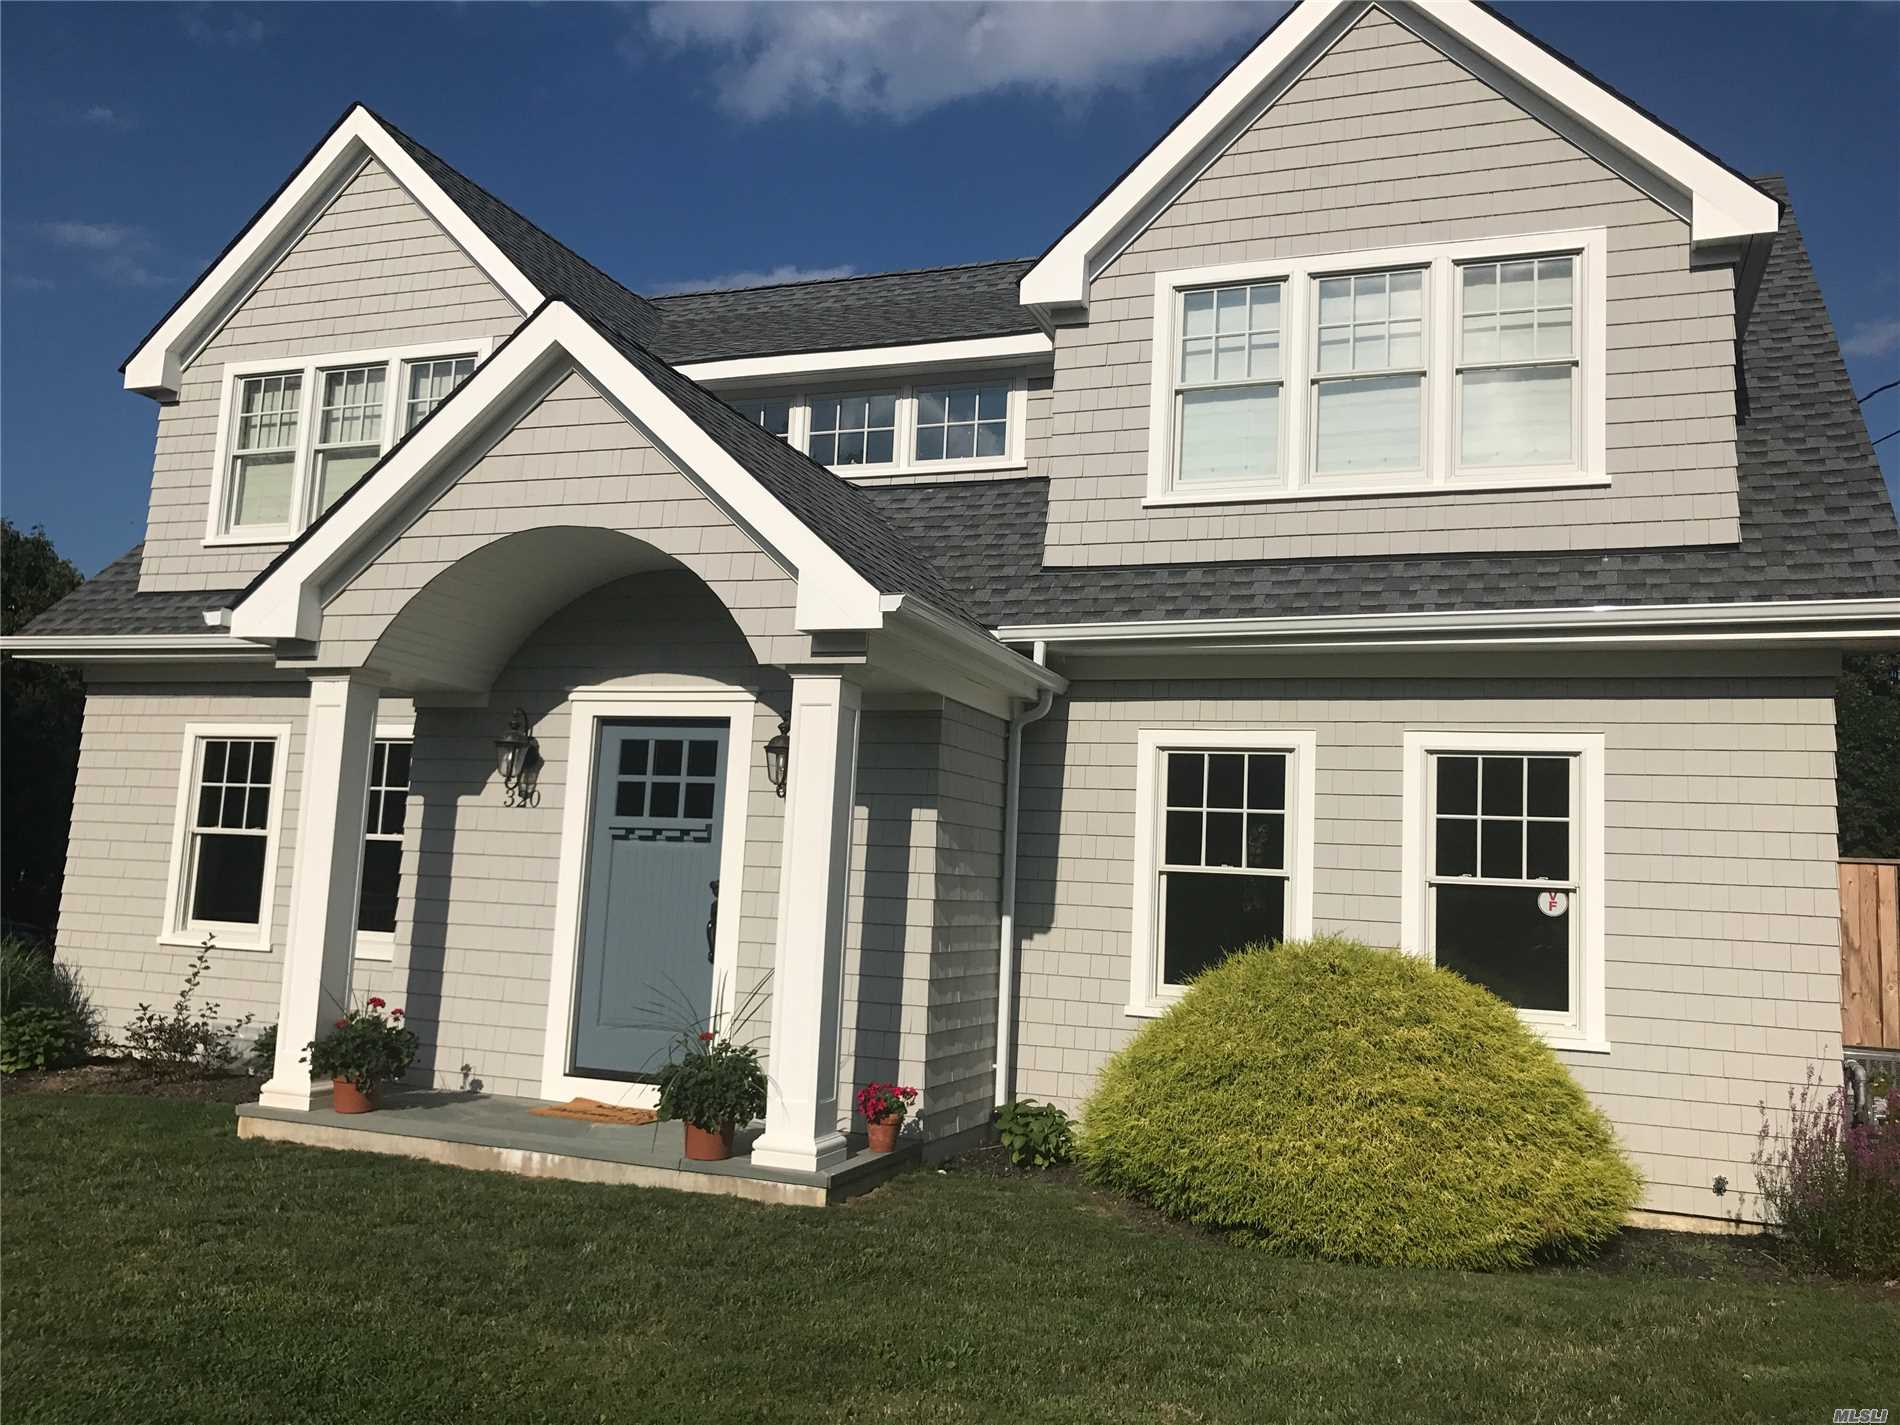 Explore Beautiful New Suffolk Living In The Heart Of The Area. Exquisite Renovated Cape, Pristine Condition, Updated Eat-In Kitchen, Spacious Bedrooms, Fireplace, Beautiful Screened In Porch. The Perfect Off Season Escape!